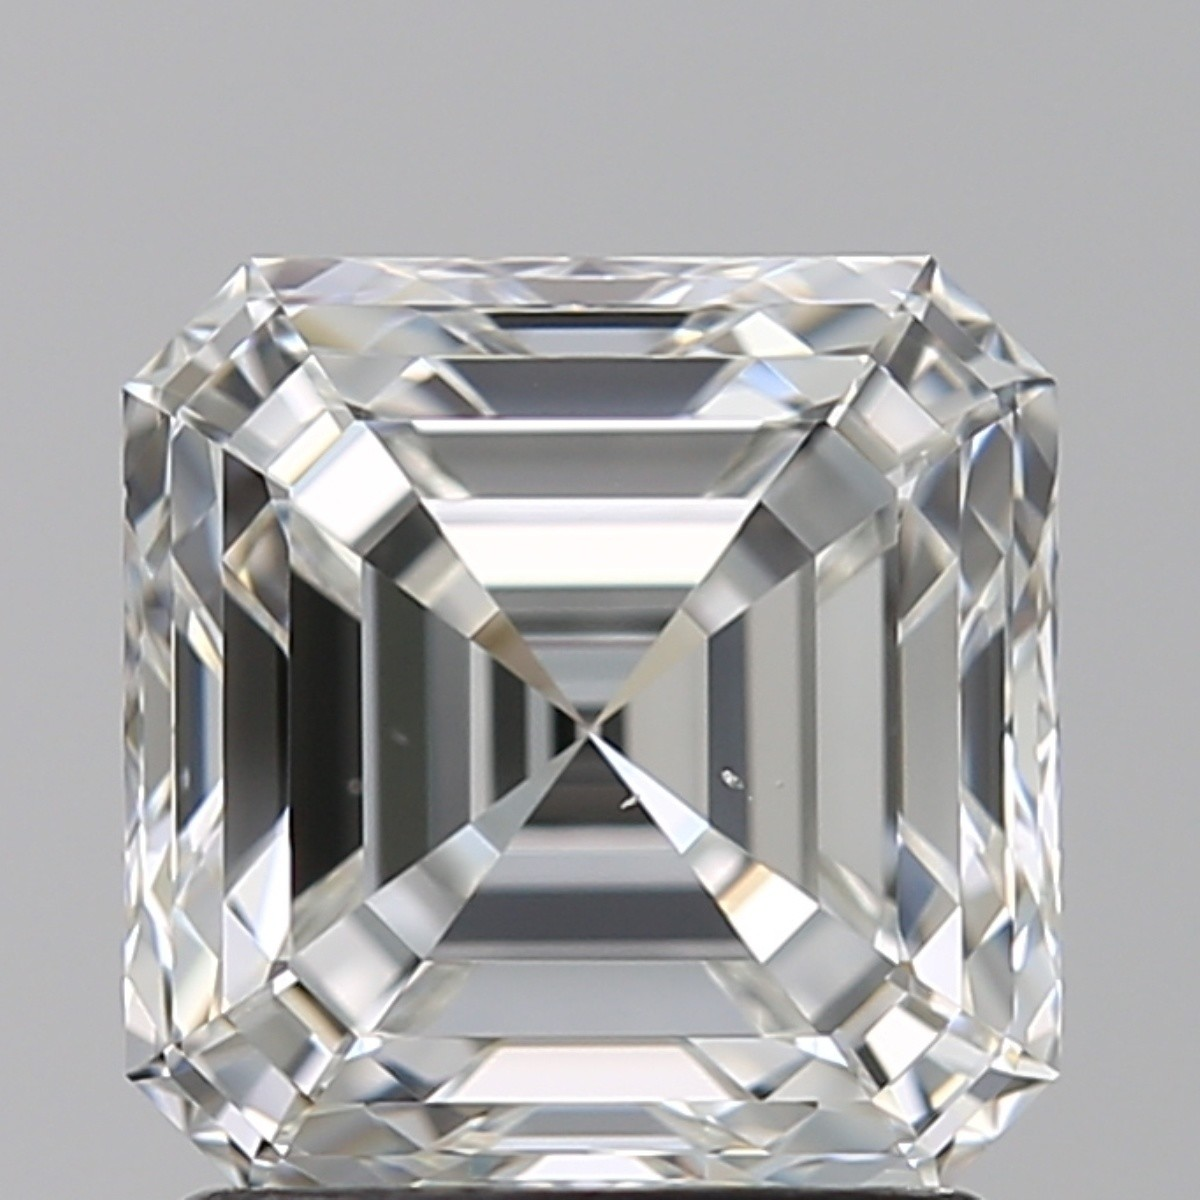 1.83 Carat Asscher Diamond (G/VS2)